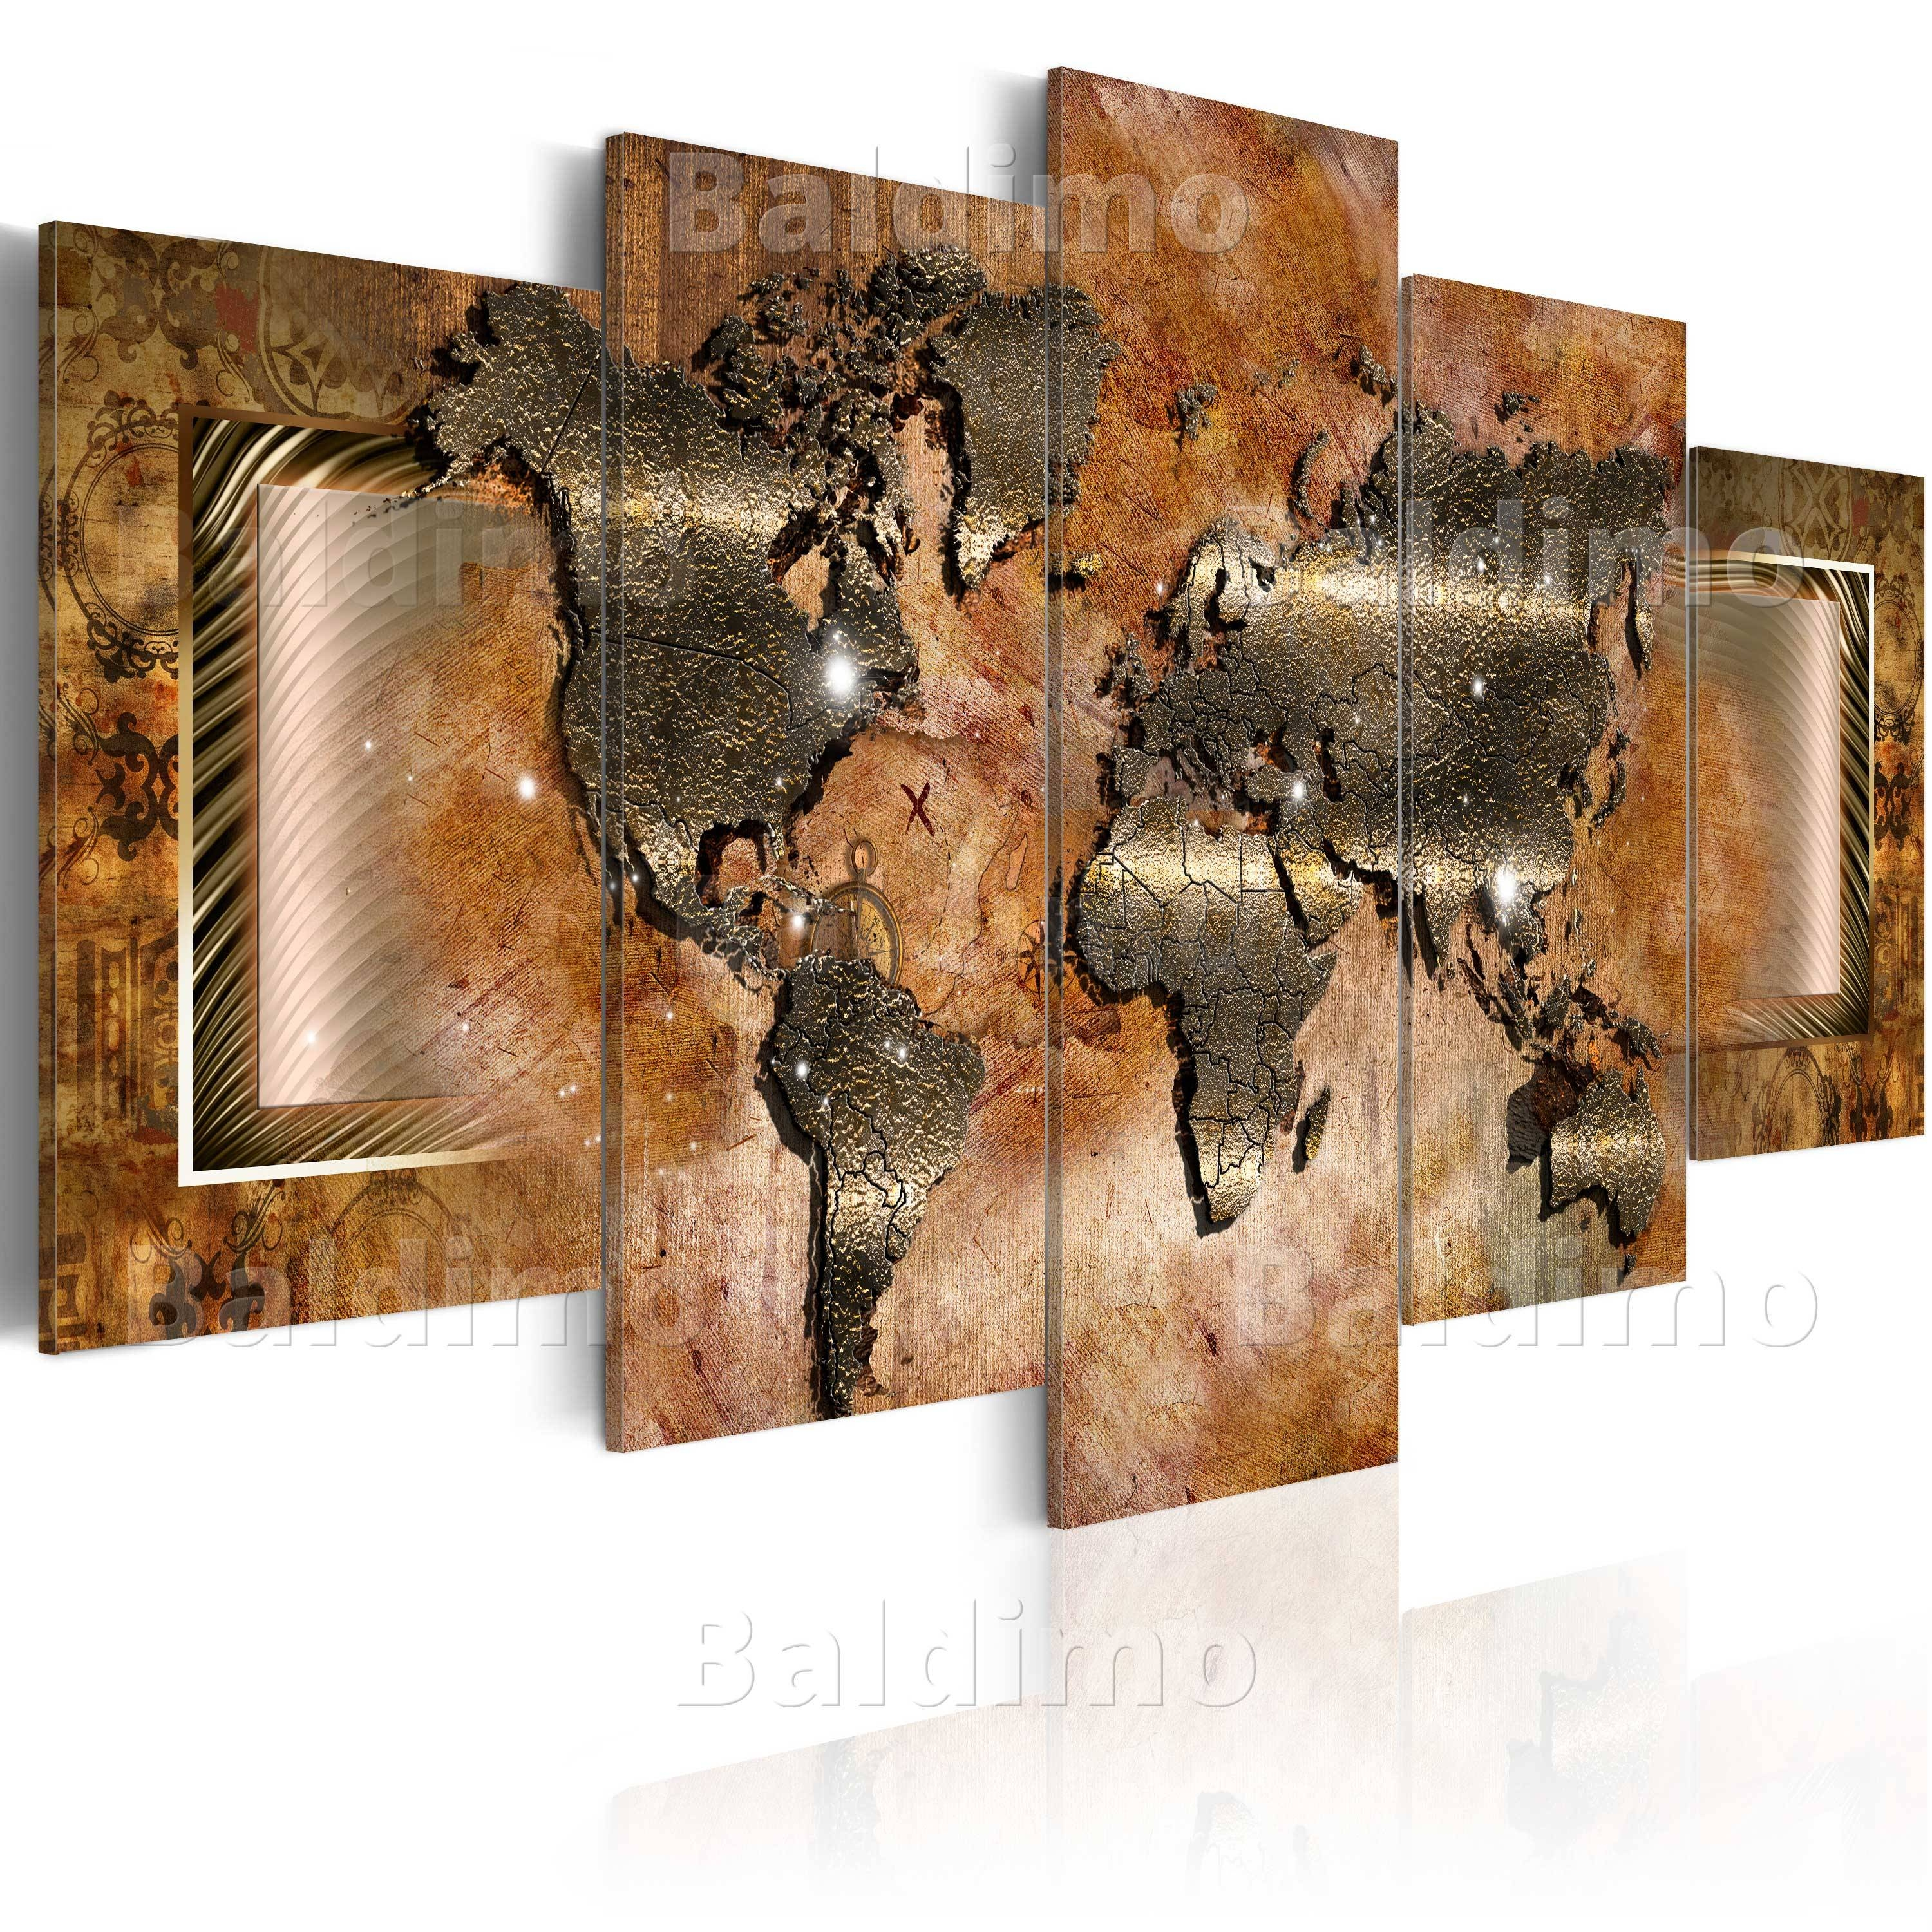 Articles With Large Canvas Wall Art Amazon Tag: Canvas Wall Art With Regard To Latest Map Wall Artwork (View 1 of 20)